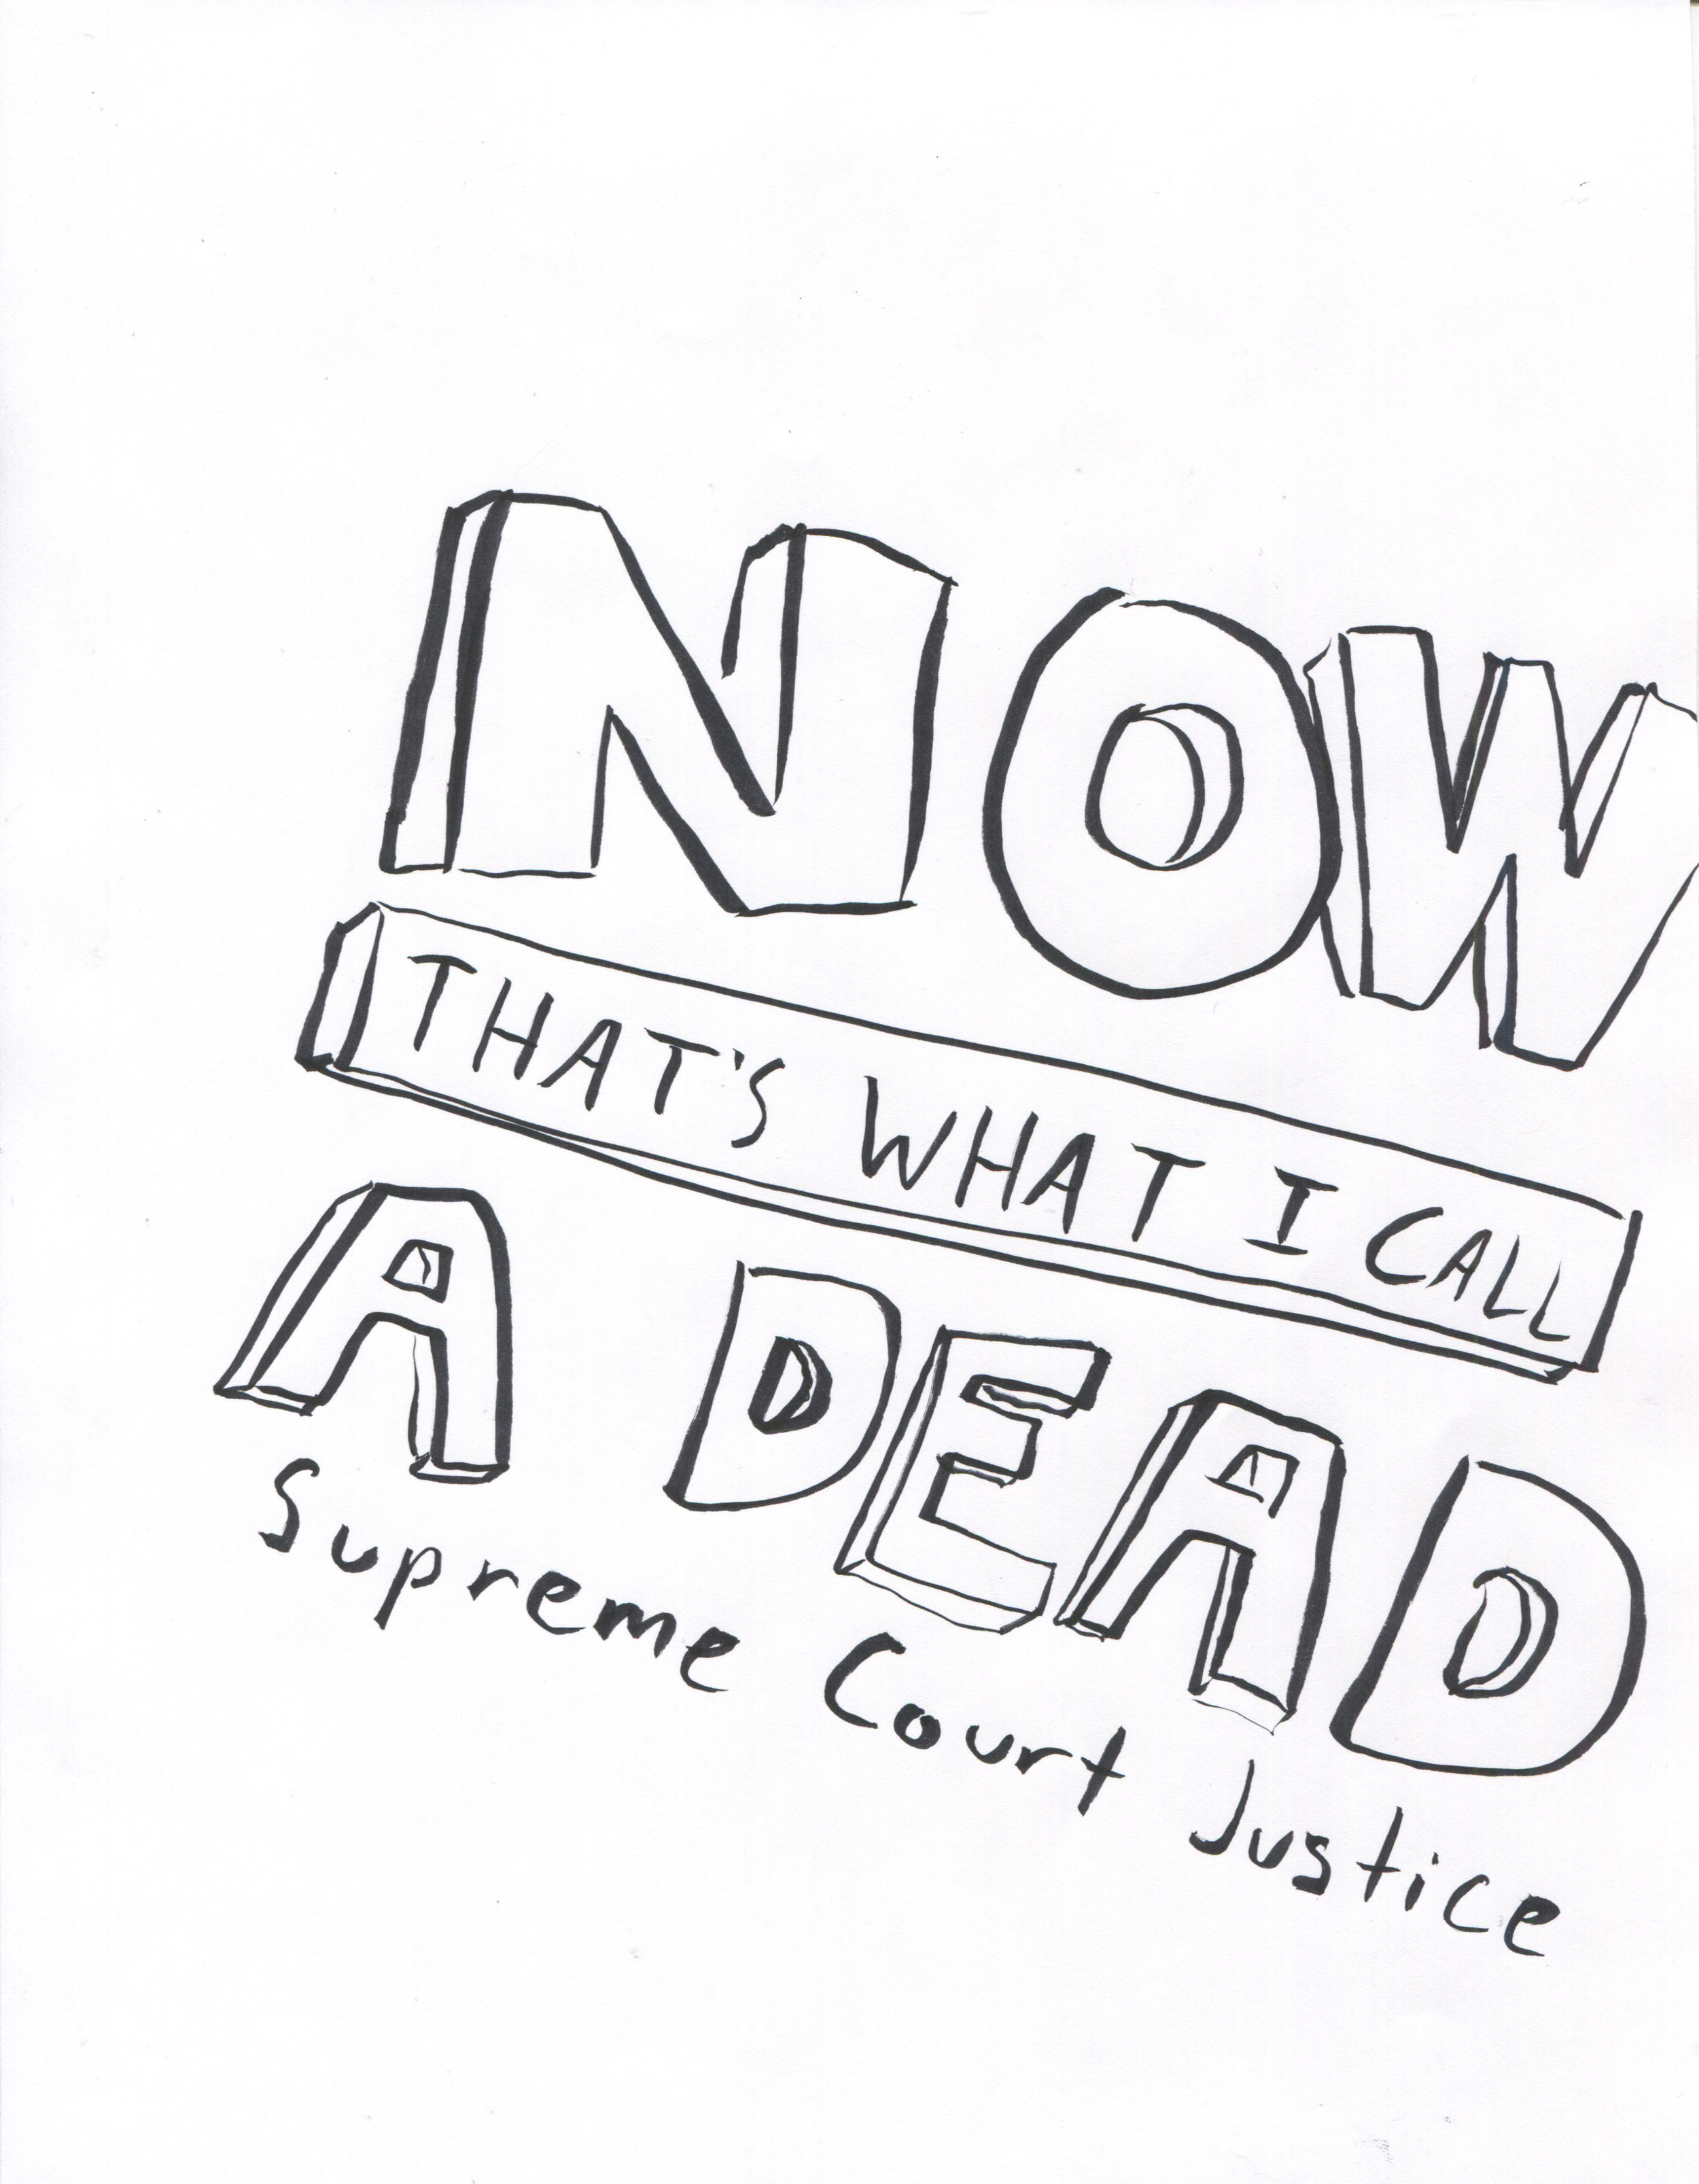 Now That's What I Call a Dead Supreme Court Justice , 2016. Drawing.